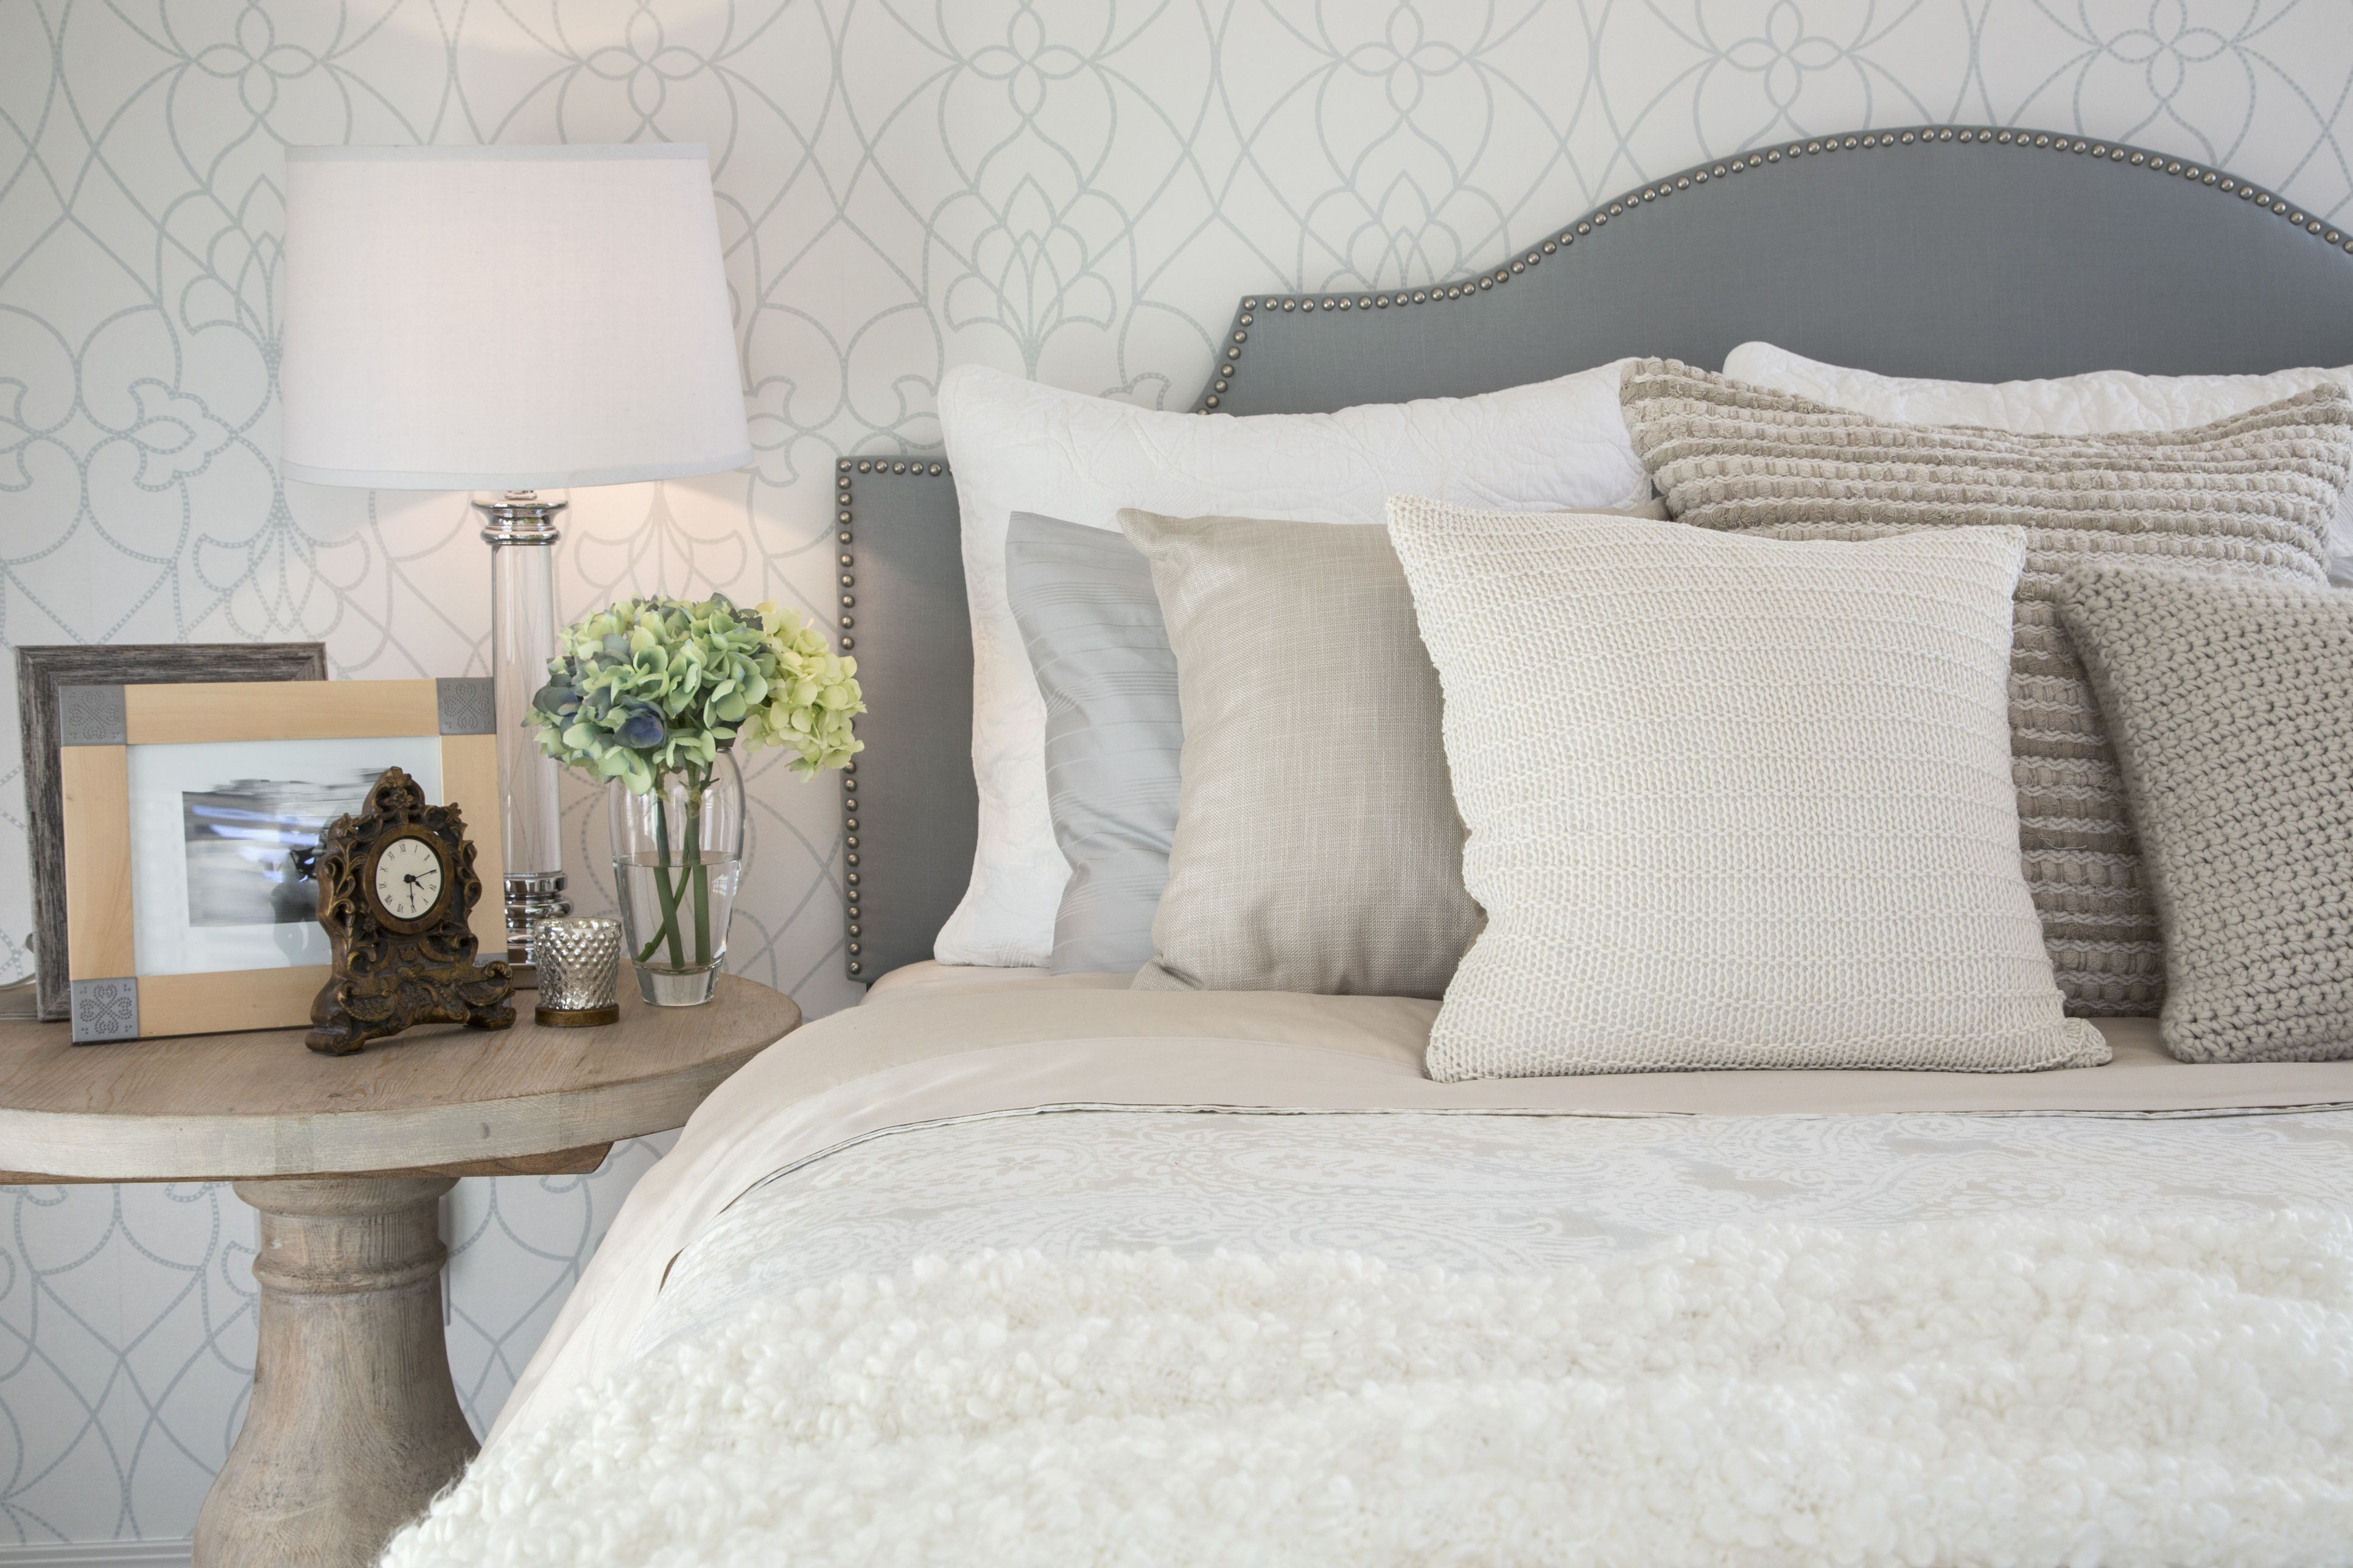 The 7 Best Cotton Sheets to Buy in 2018